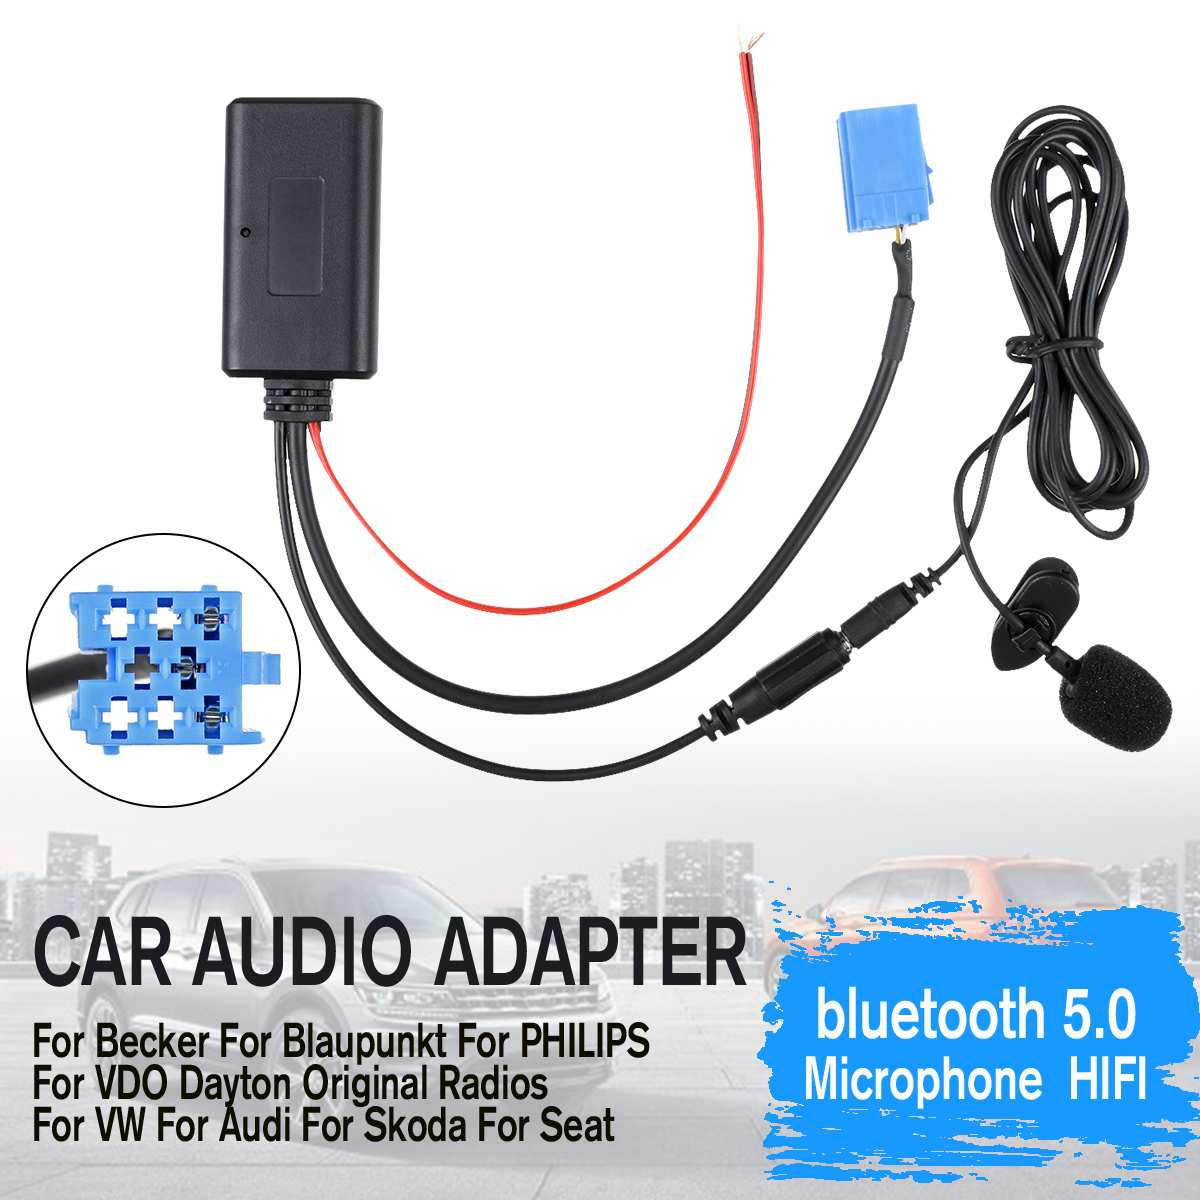 Car Audio Bluetooth Wireless Cable Adapter Microphone MIC AUX Music Player For Becker For VW For Audi